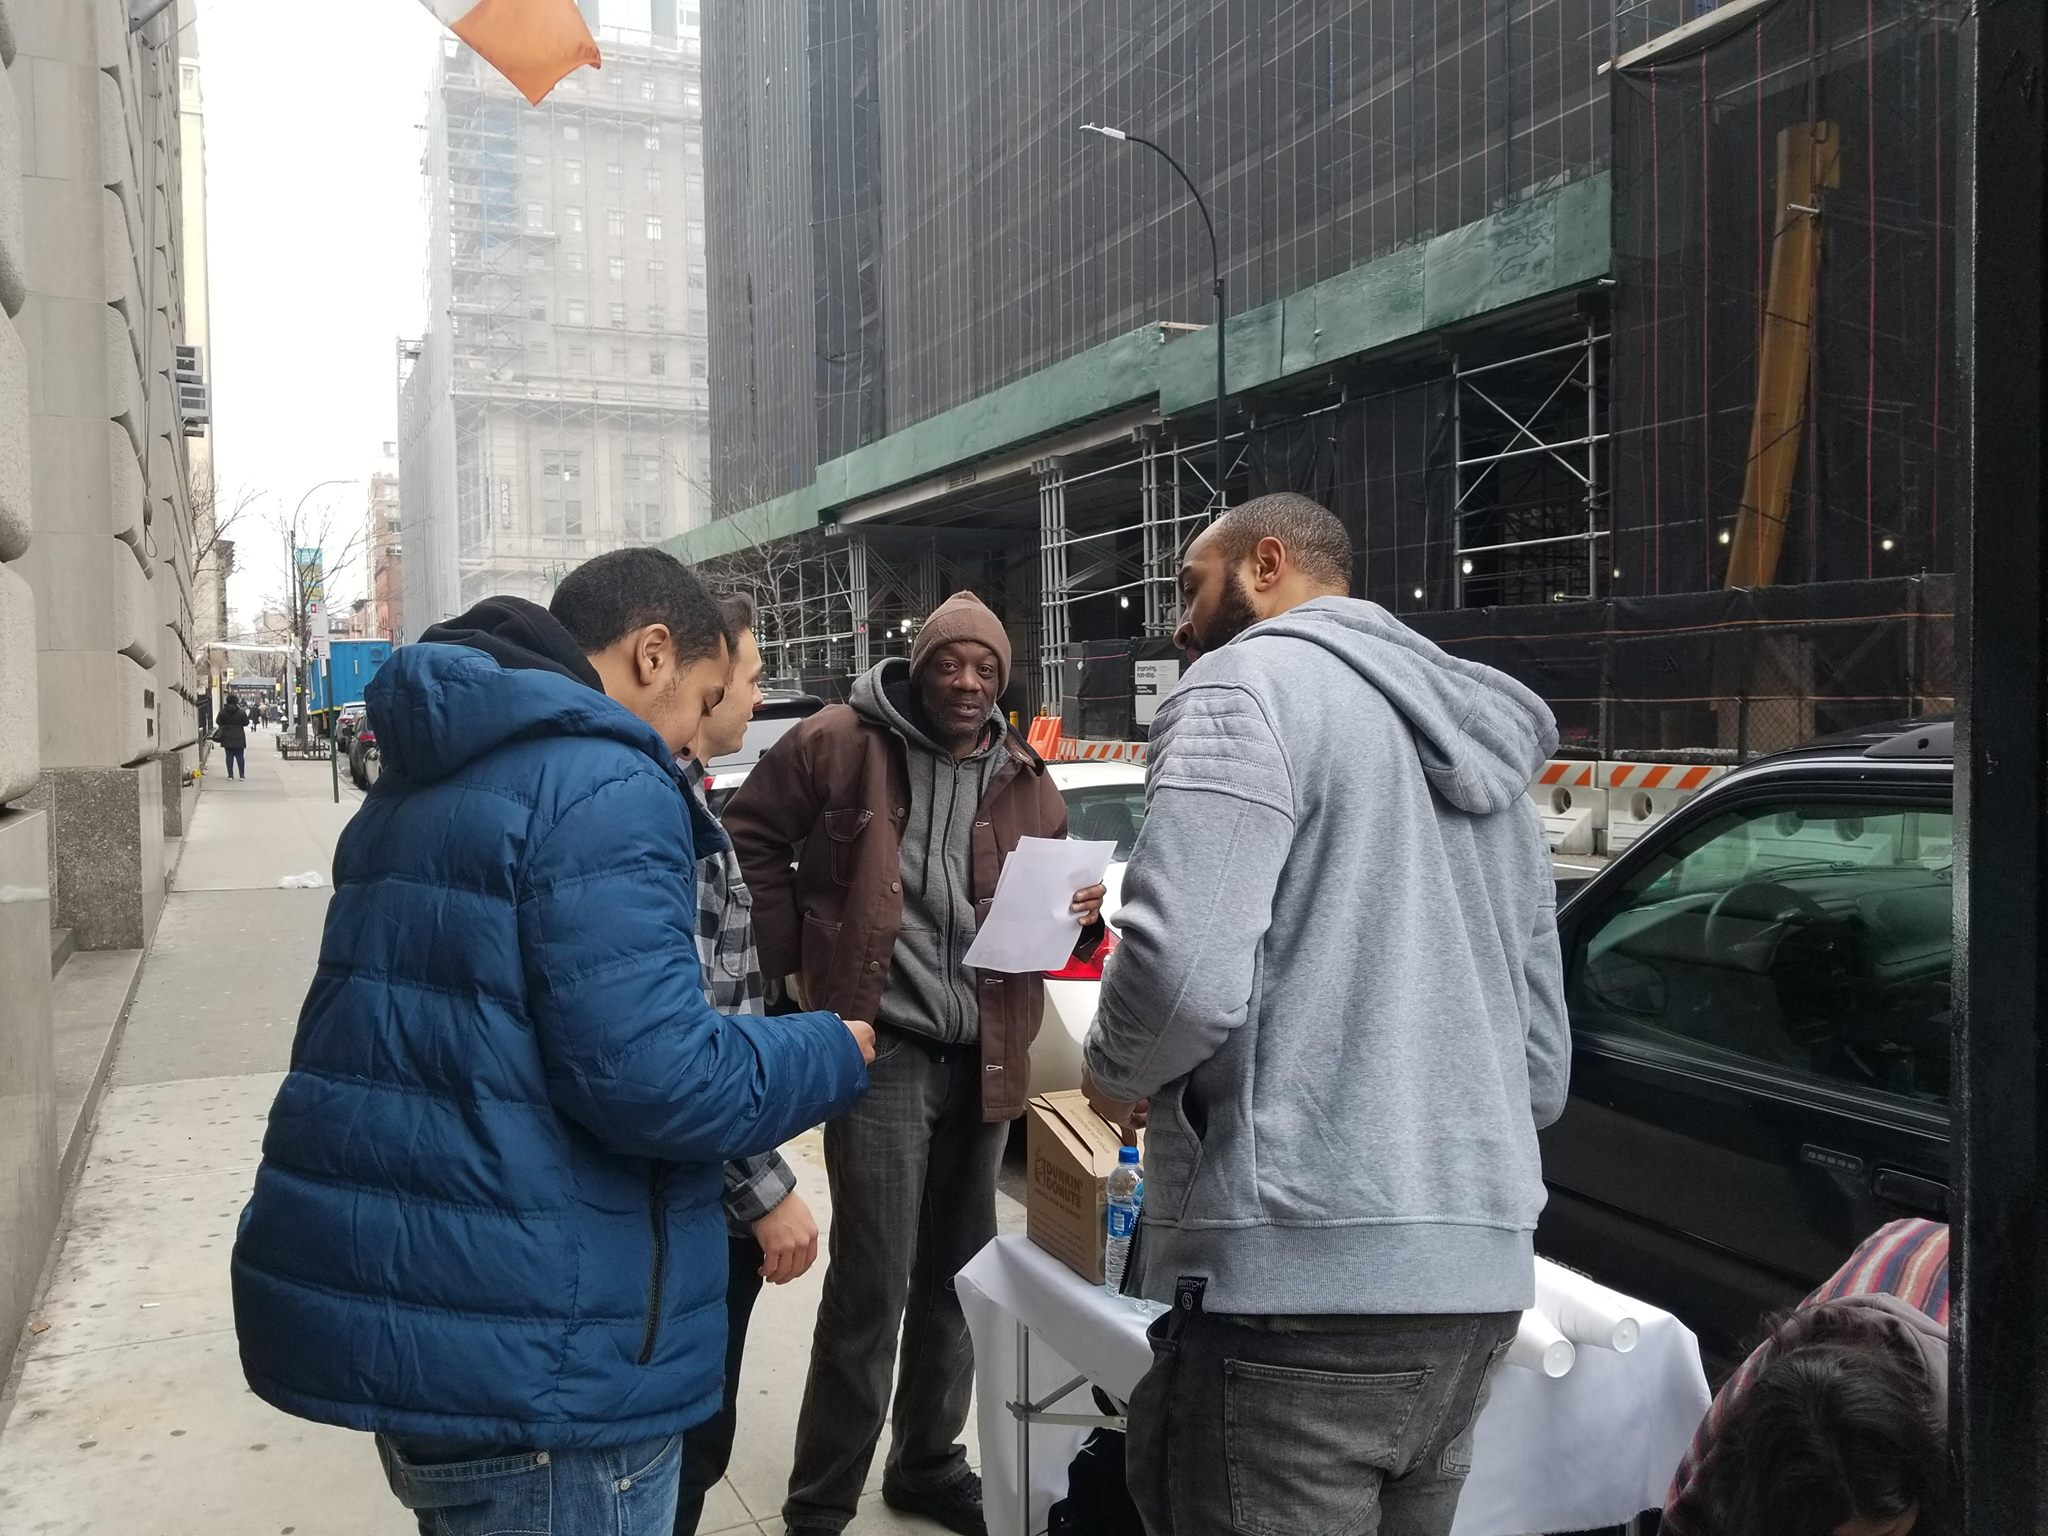 Brooklyn court outreach serving the people